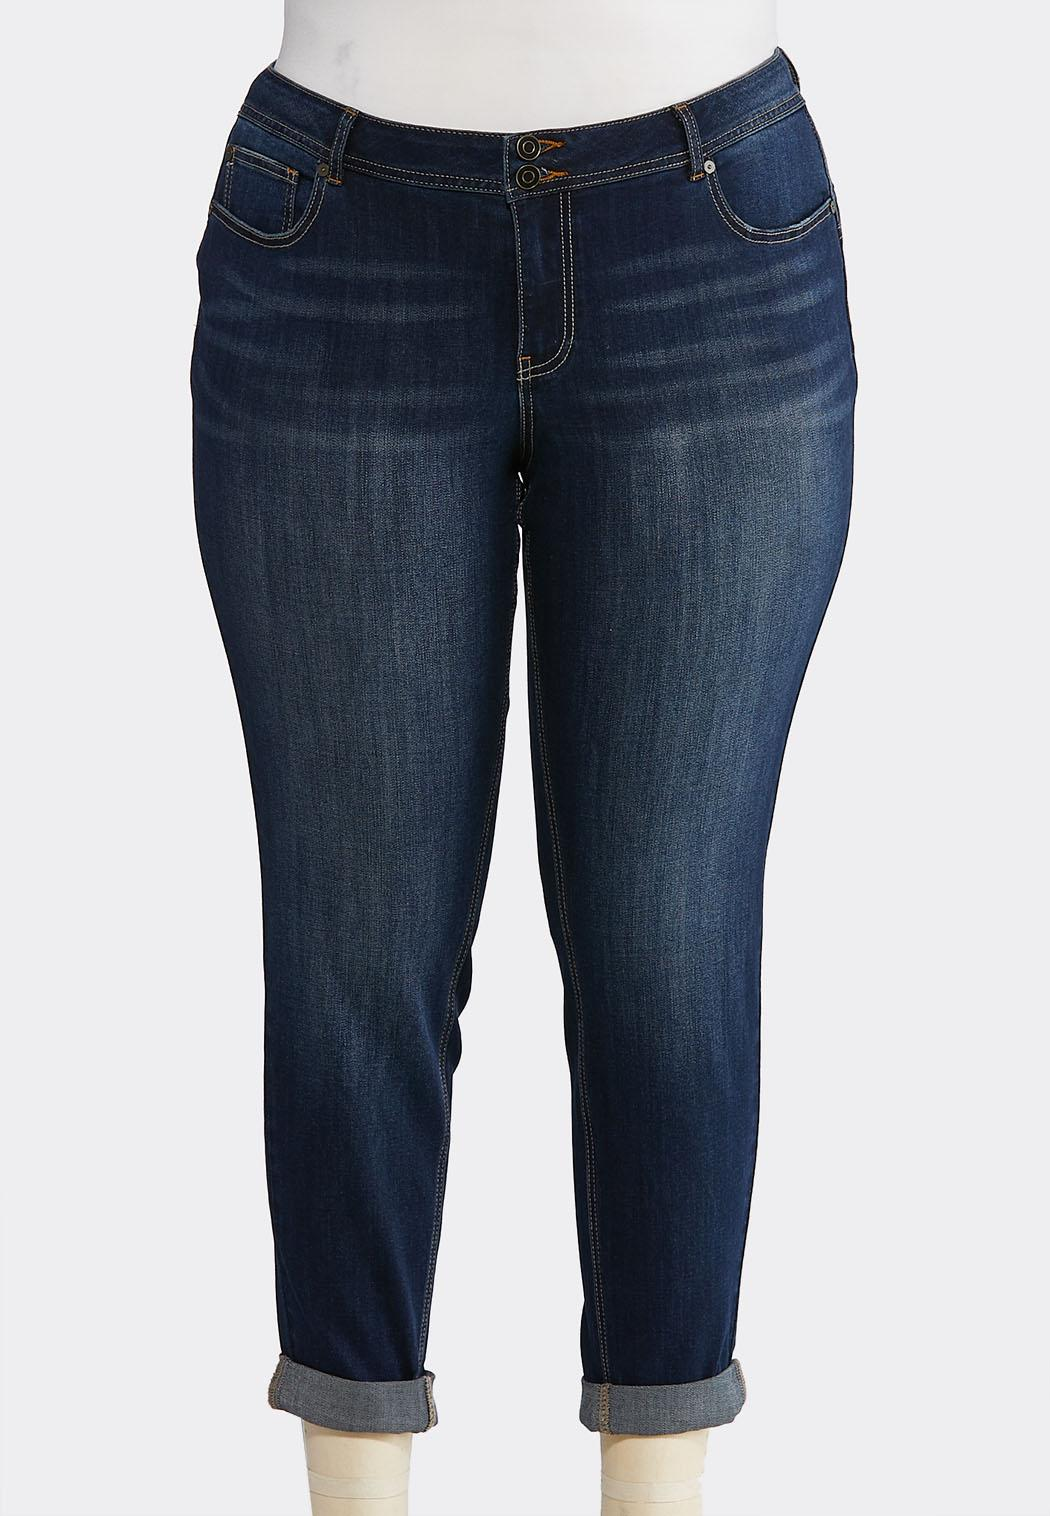 36bfec1bdc Plus Size Dark Skinny Ankle Jeans Ankle Pants Cato Fashions